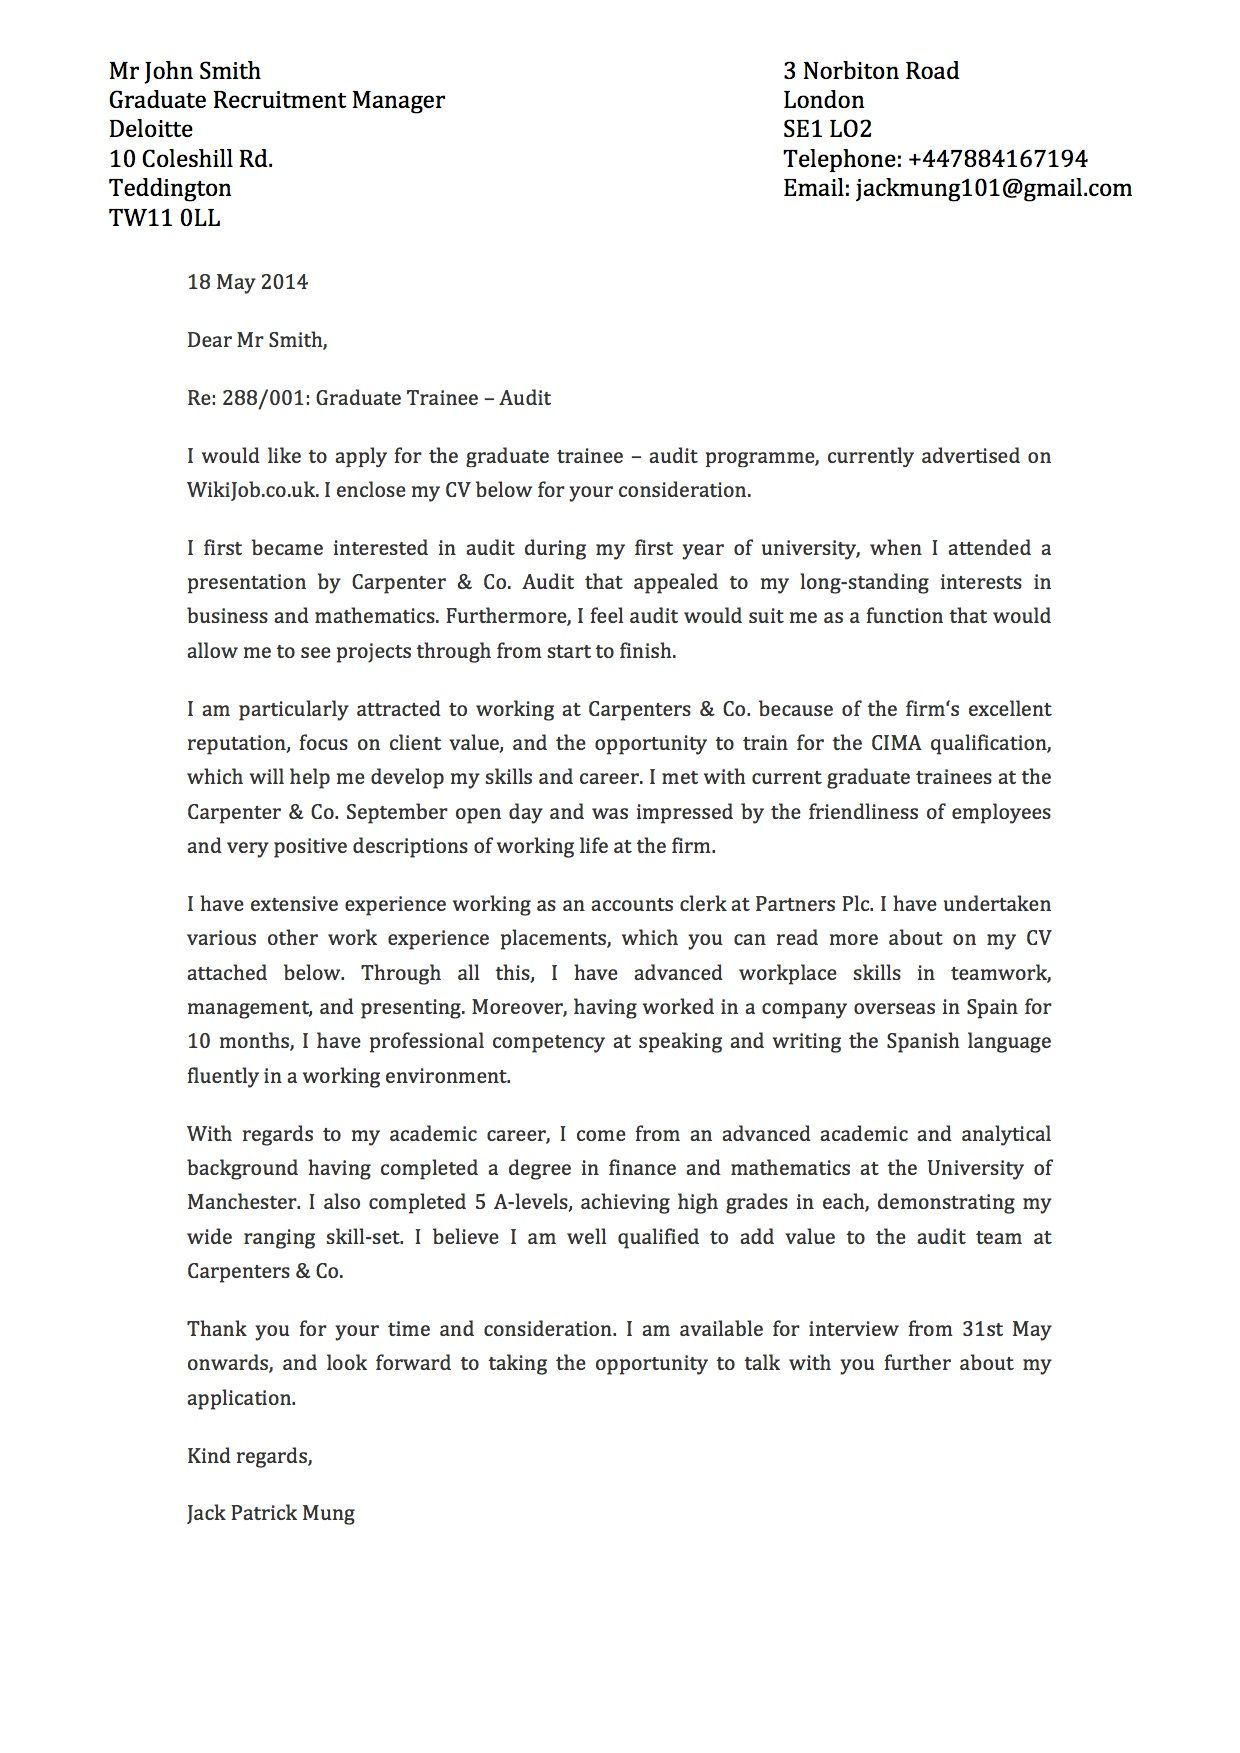 Formal Cover Letter Letter Template Formal Letter Template  News To Go 2  Pinterest .